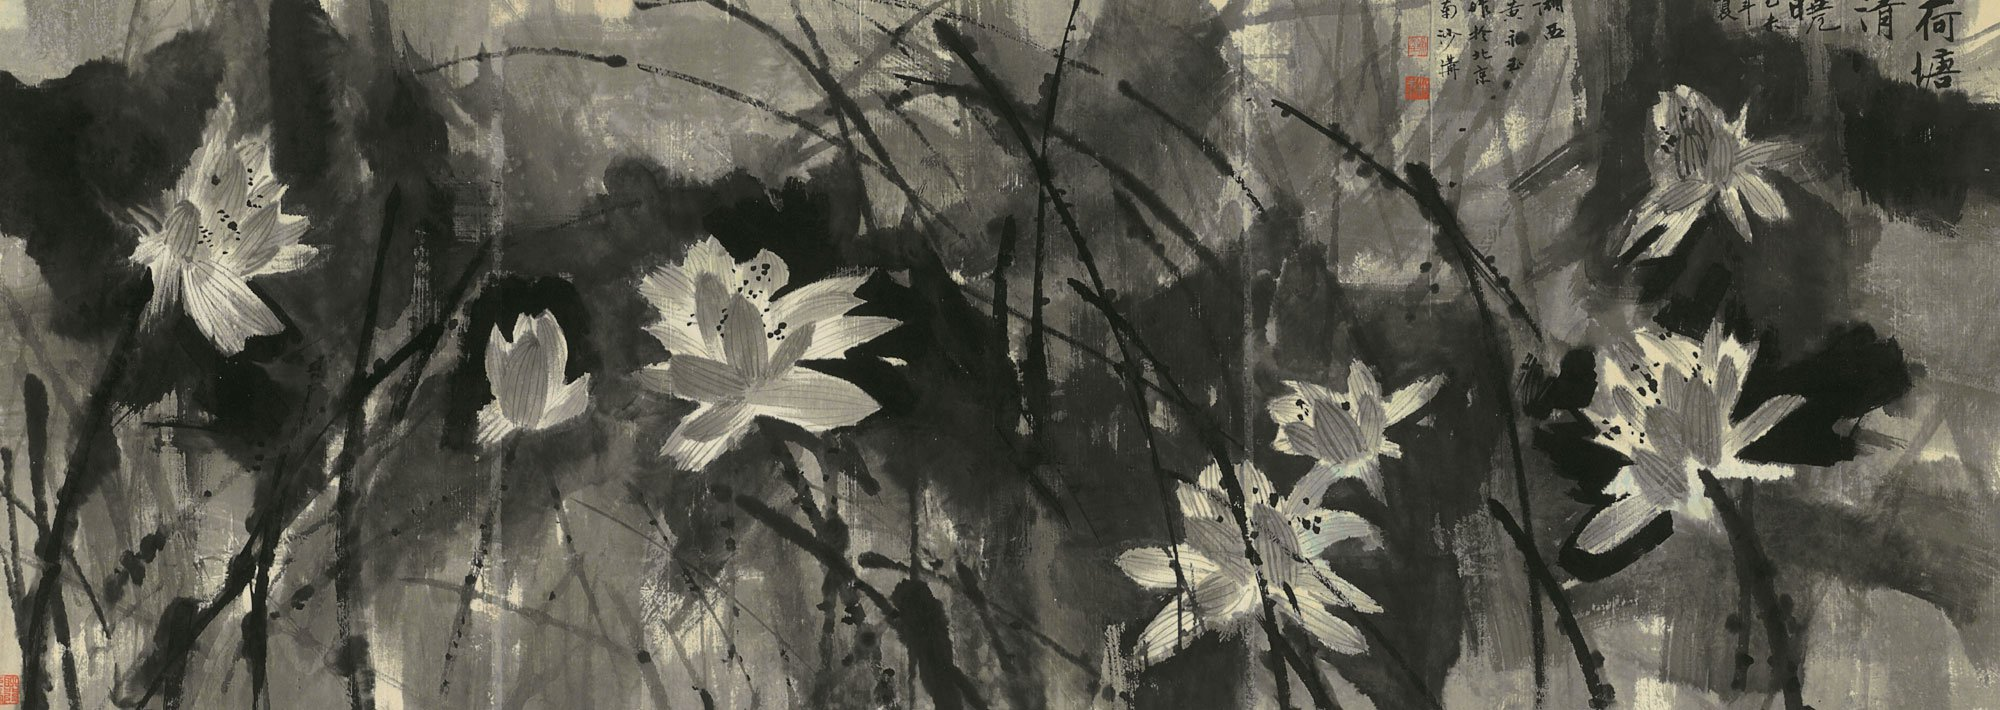 Ink Lotus (1979): Huang Yongyu (Born 1924)Lot 837: Christie's Fine Chinese PaintingsMedium: Scroll mounted and framed, ink and color on paper